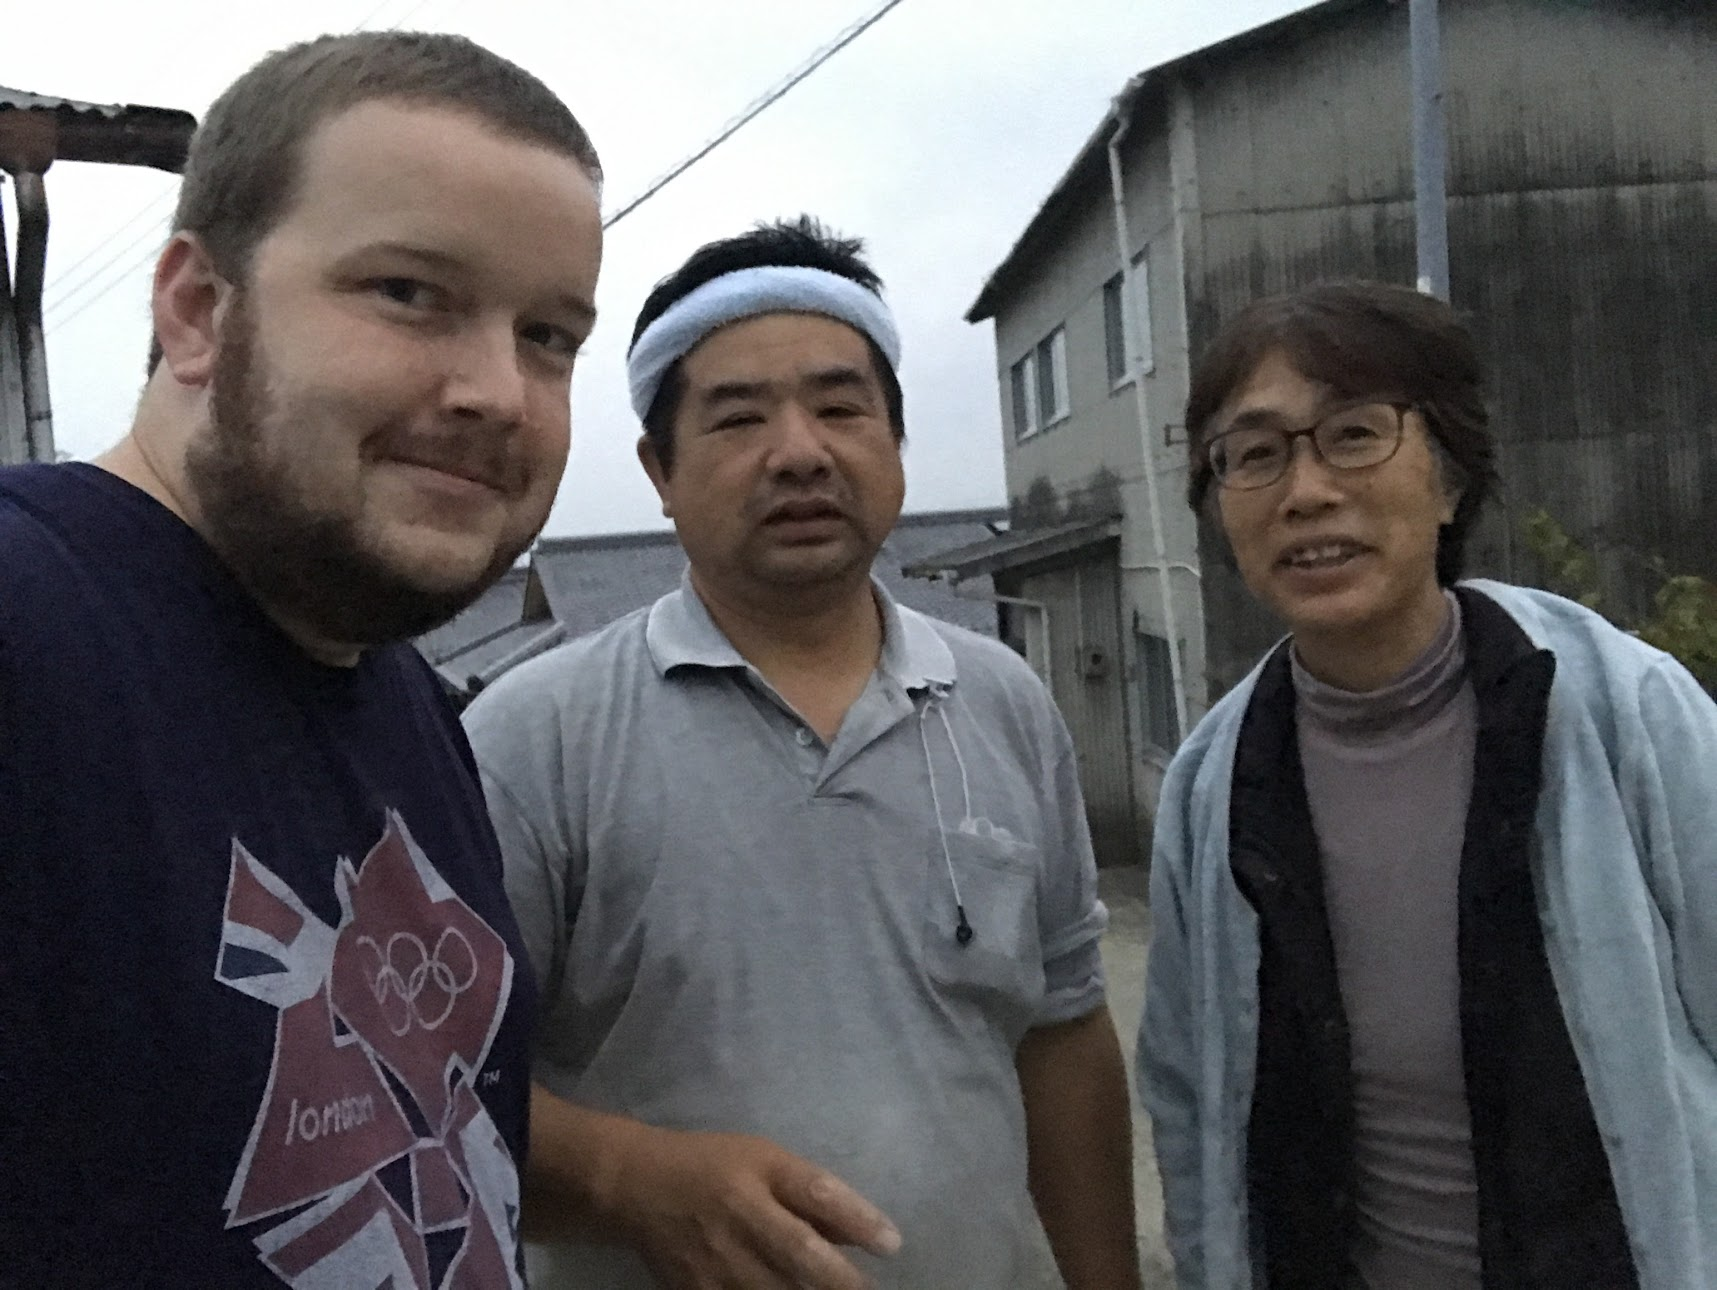 In Gojo, Nara I'm currently staying way out in the country. These are some of Joseph Cathcart's neighbors who thought I was Joseph! They had fun trying to communicate with me and showed me a huge mudslide that happened recently after the typhoon.